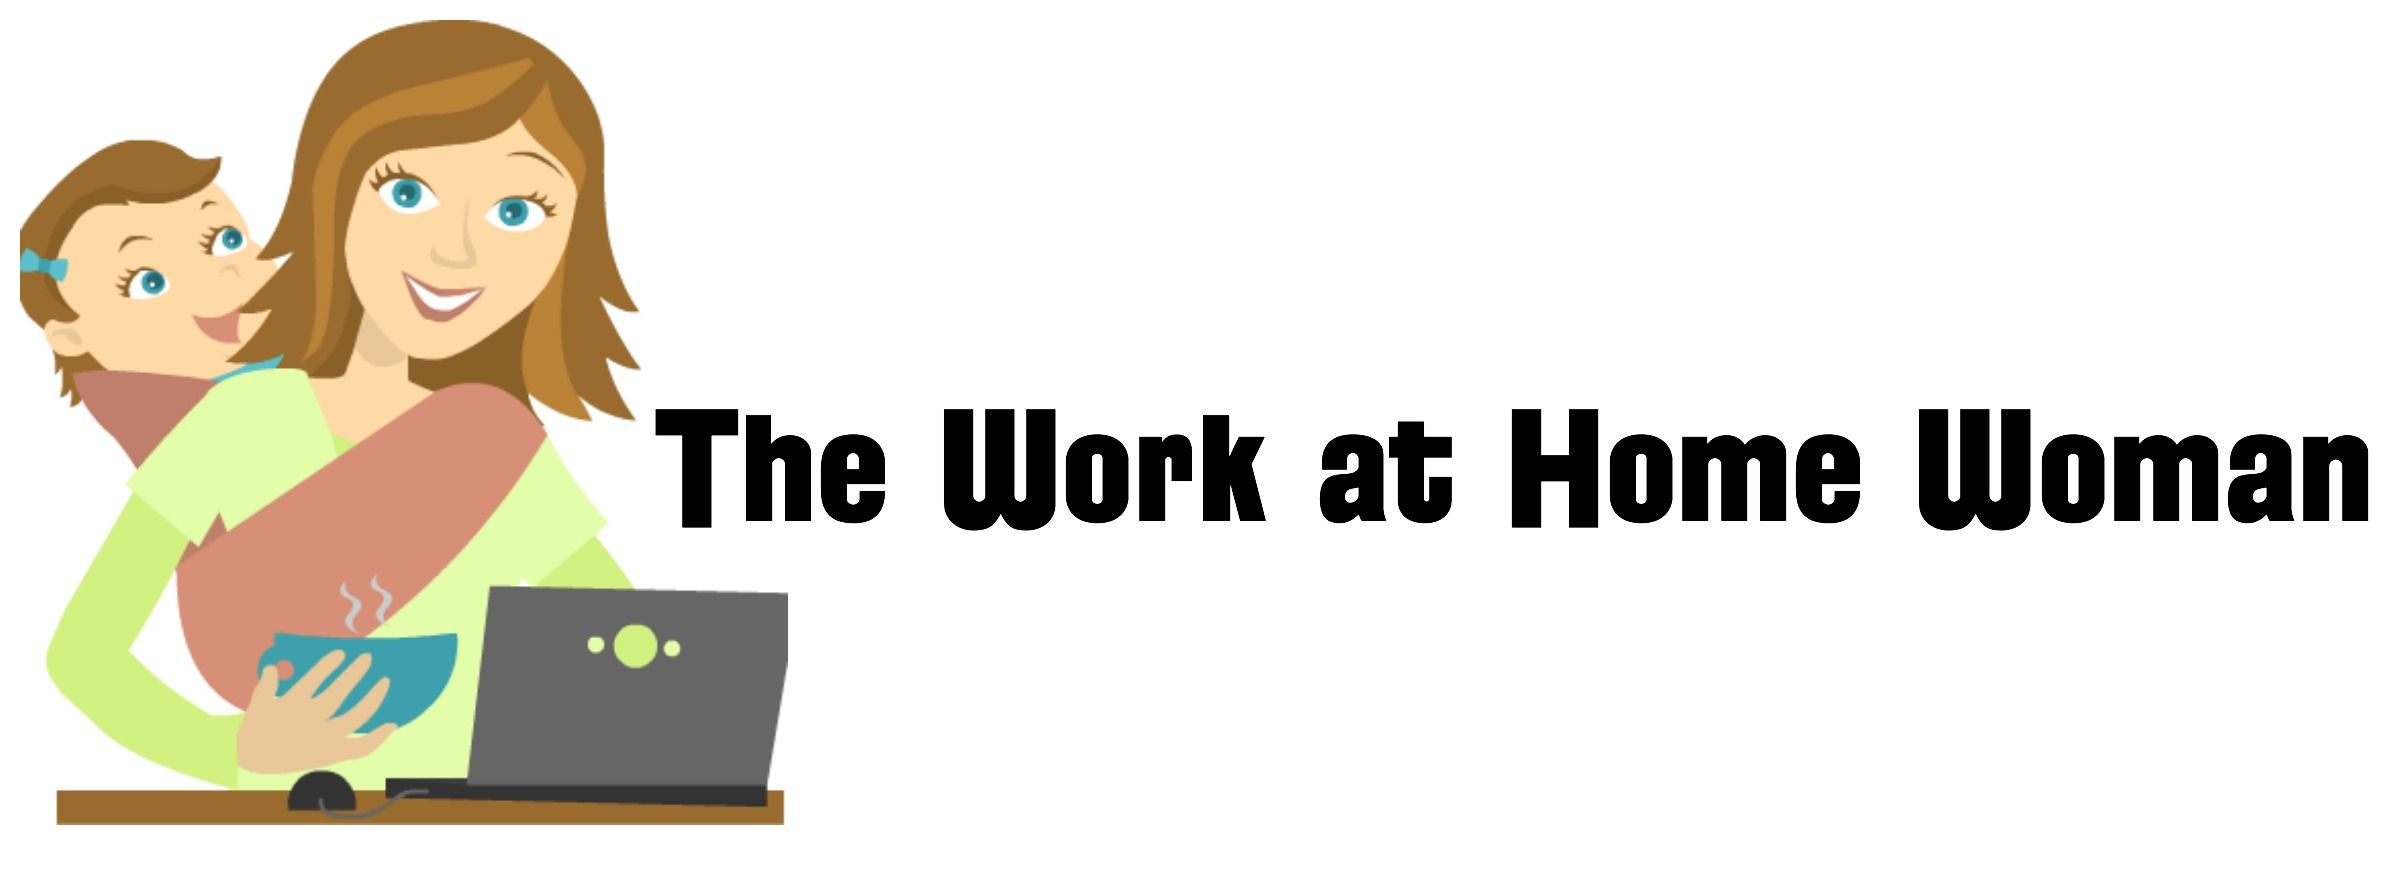 18 Short Task Sites for Making Money from Home | Work | Work from